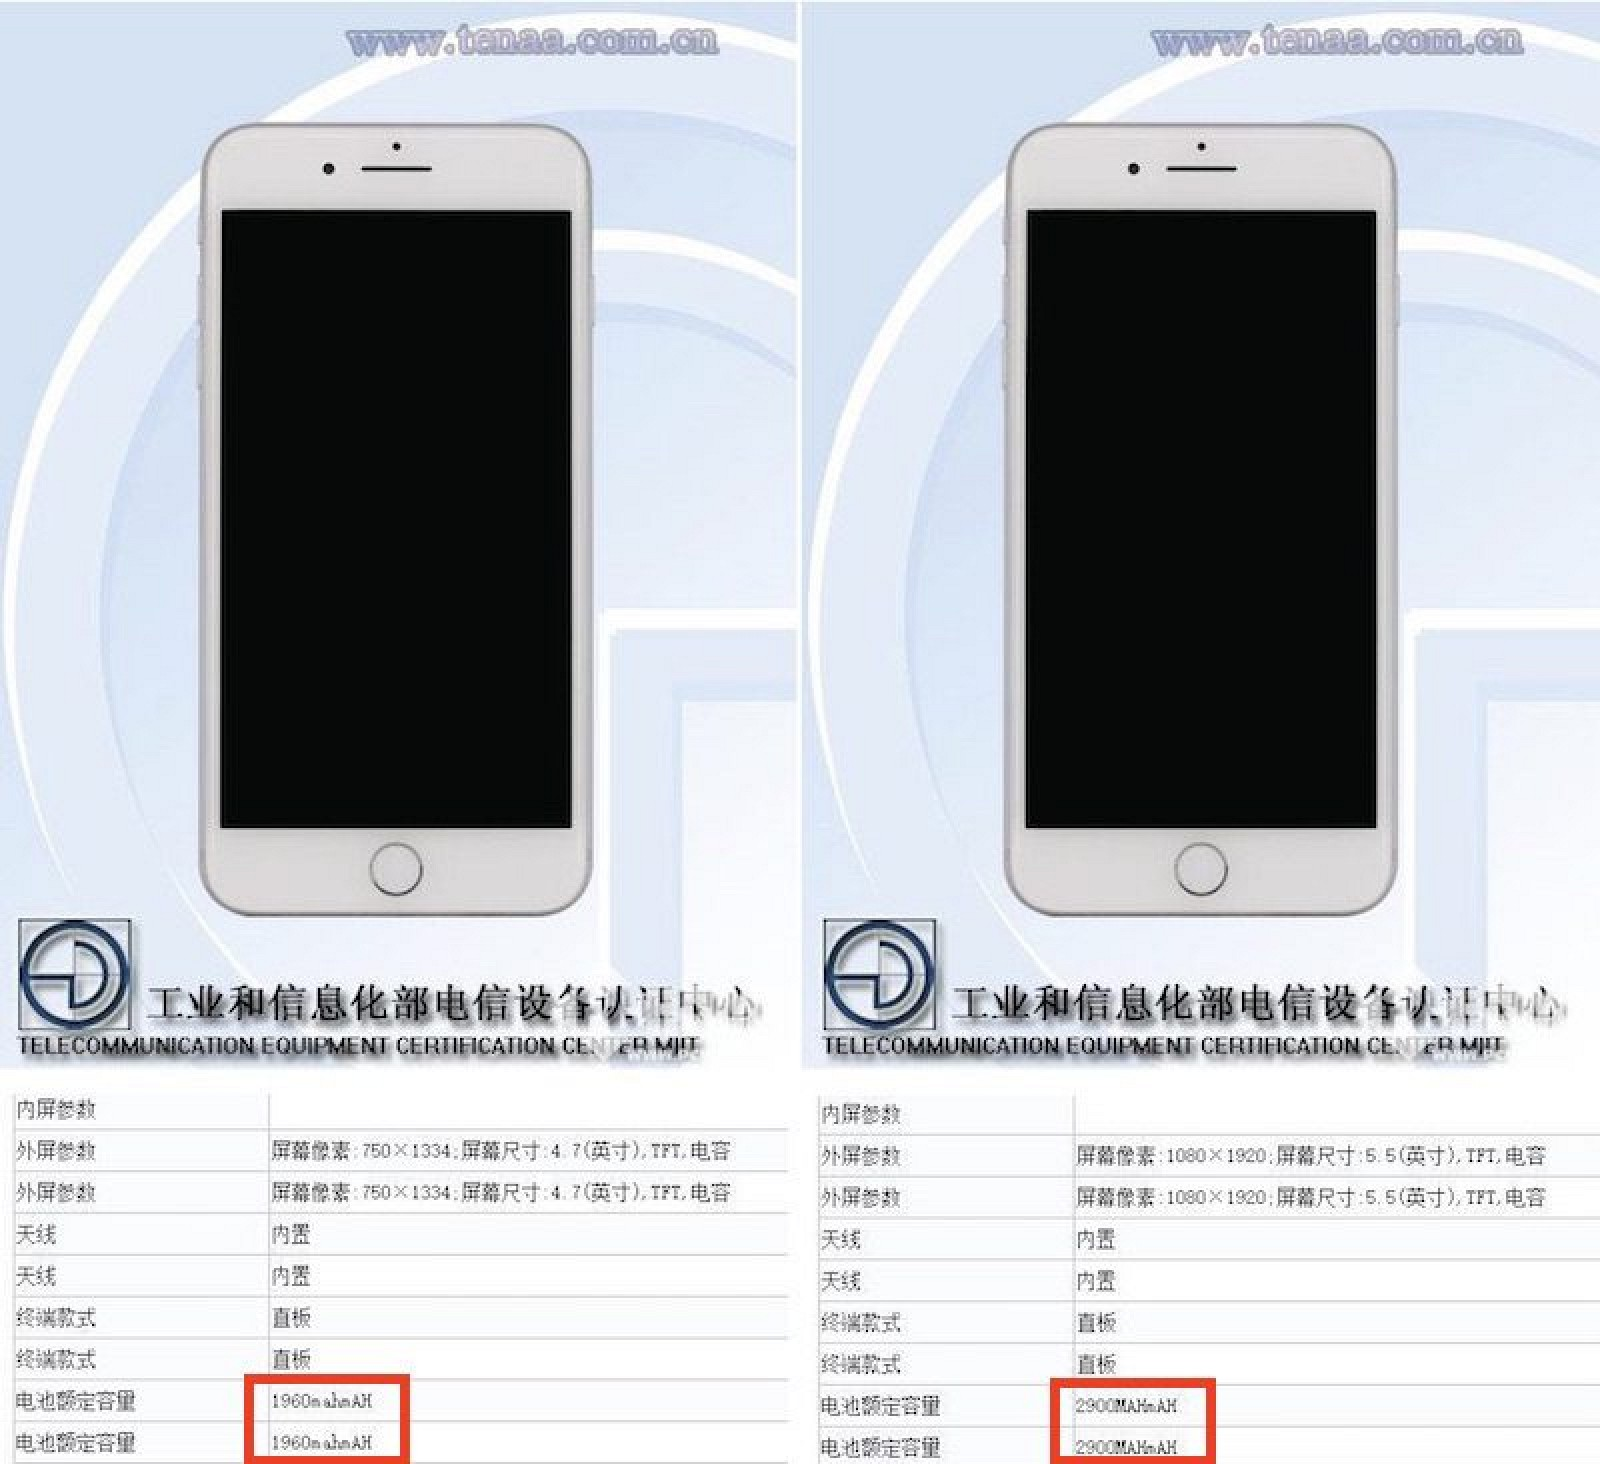 Vr For Iphone 6 Plus >> Technical Certification Lists Improved iPhone 7 Battery Capacity, 3GB RAM for iPhone 7 Plus ...